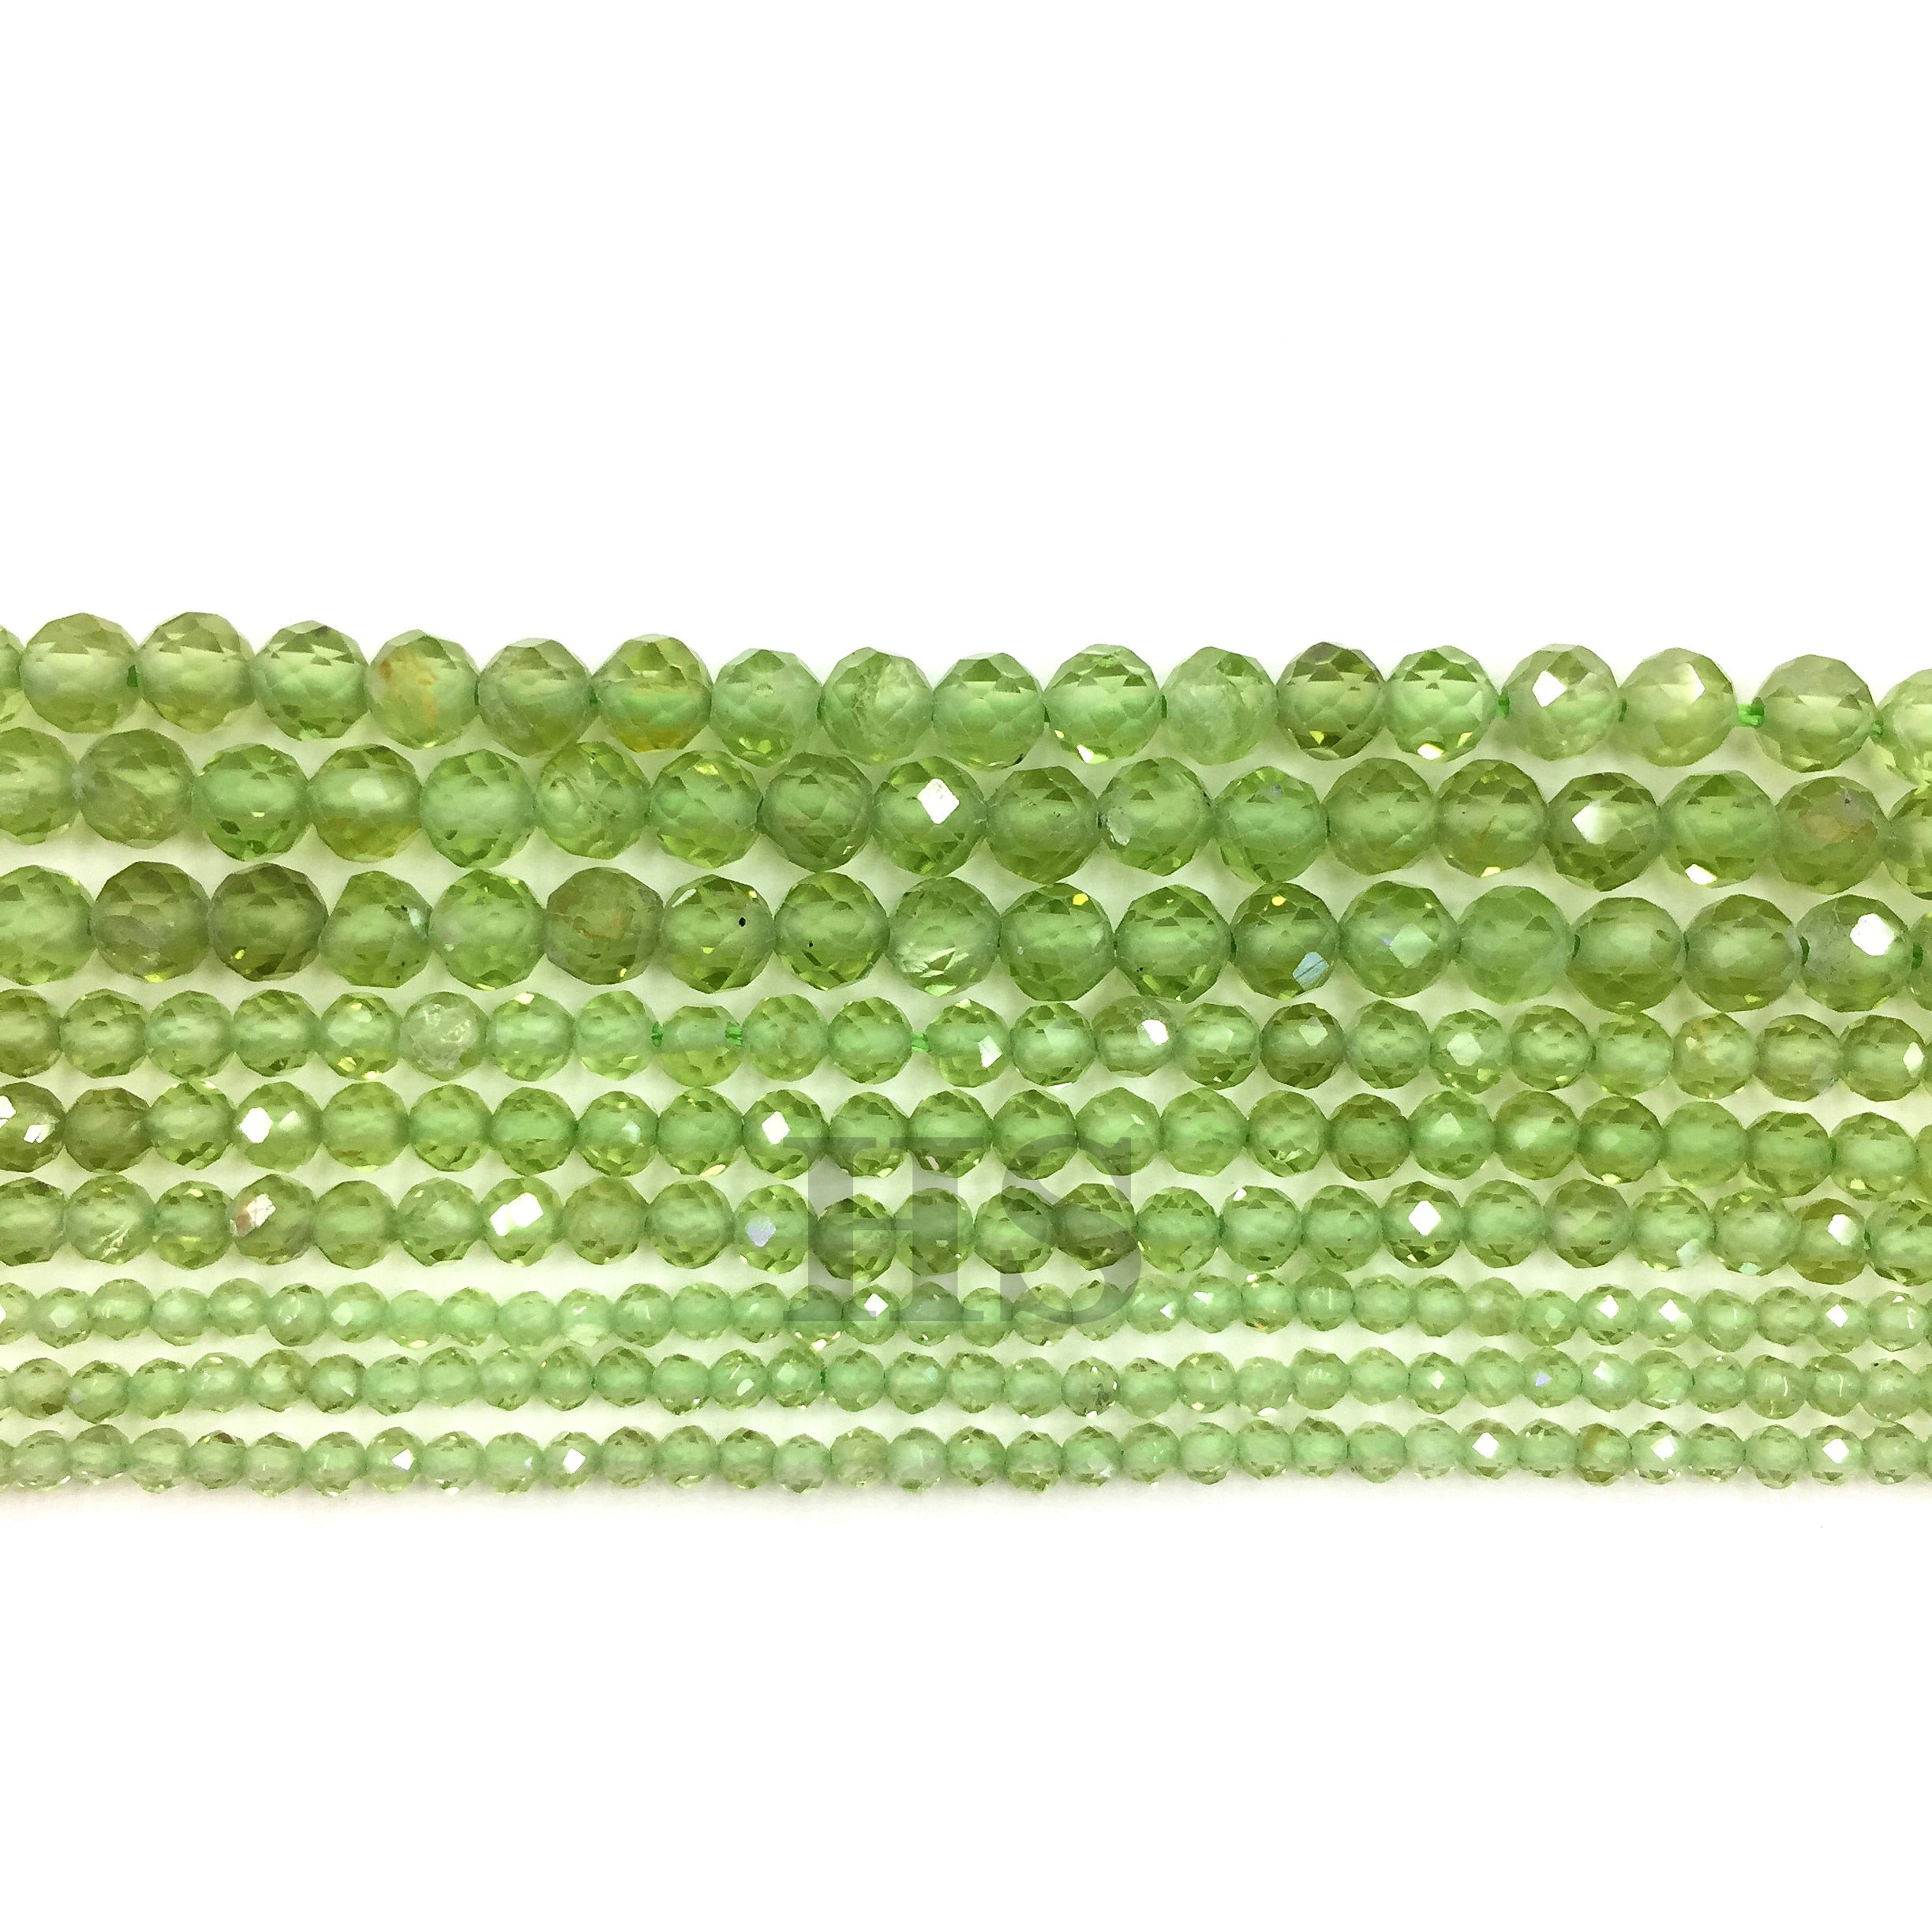 Peridot Faceted Beads 2mm 3mm 4mm